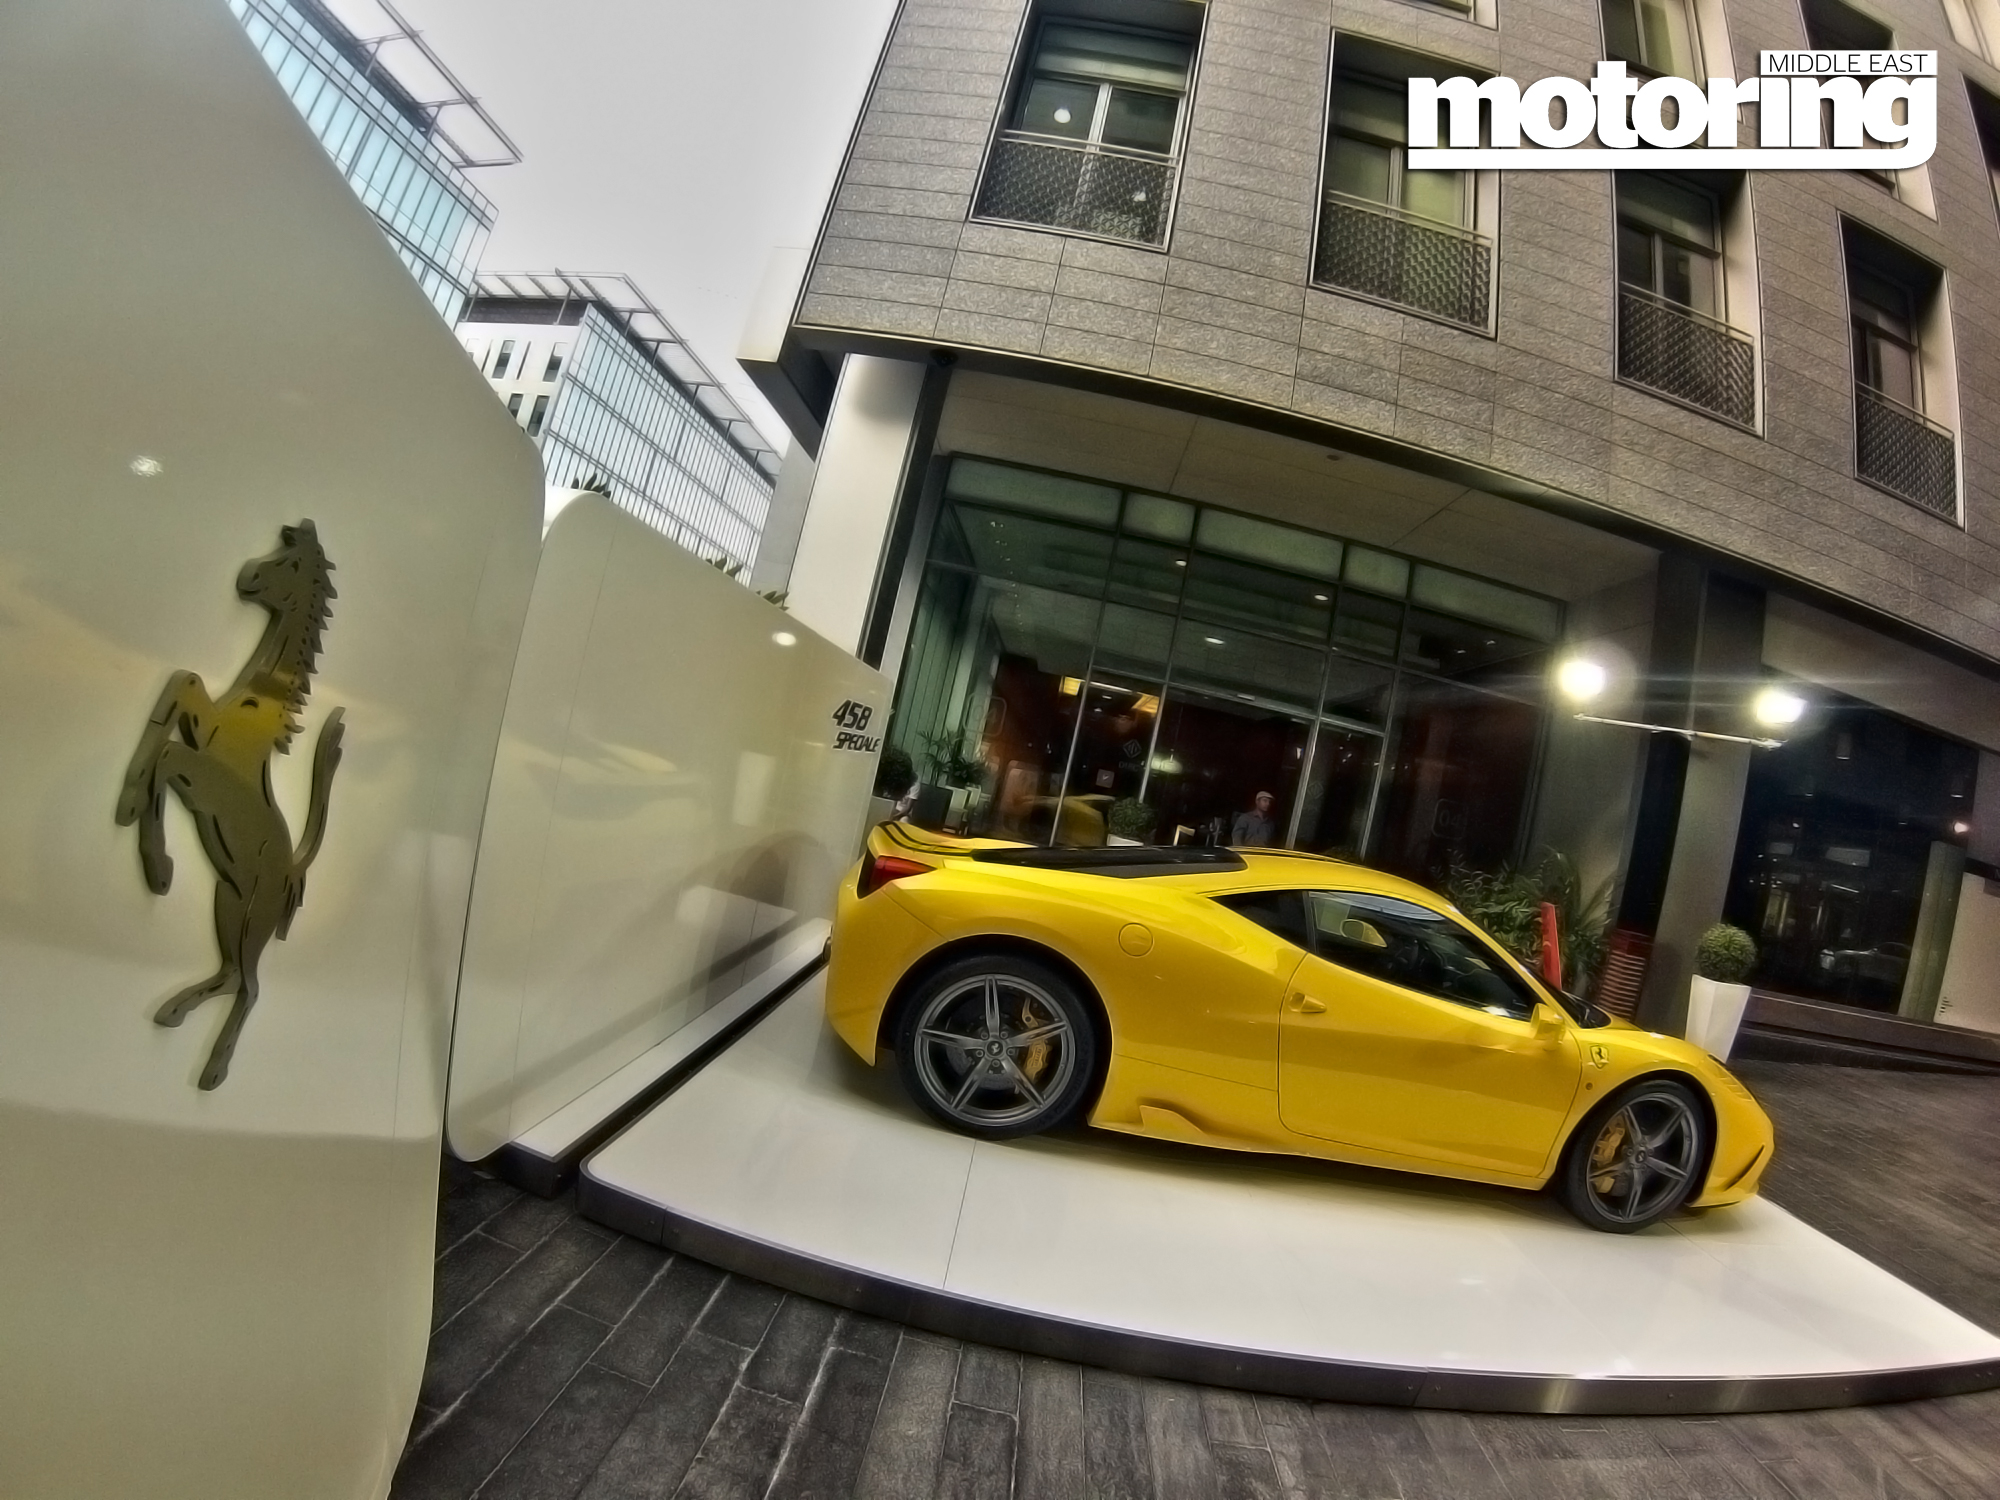 Dubai Car Show In Financial Citymotoring Middle East